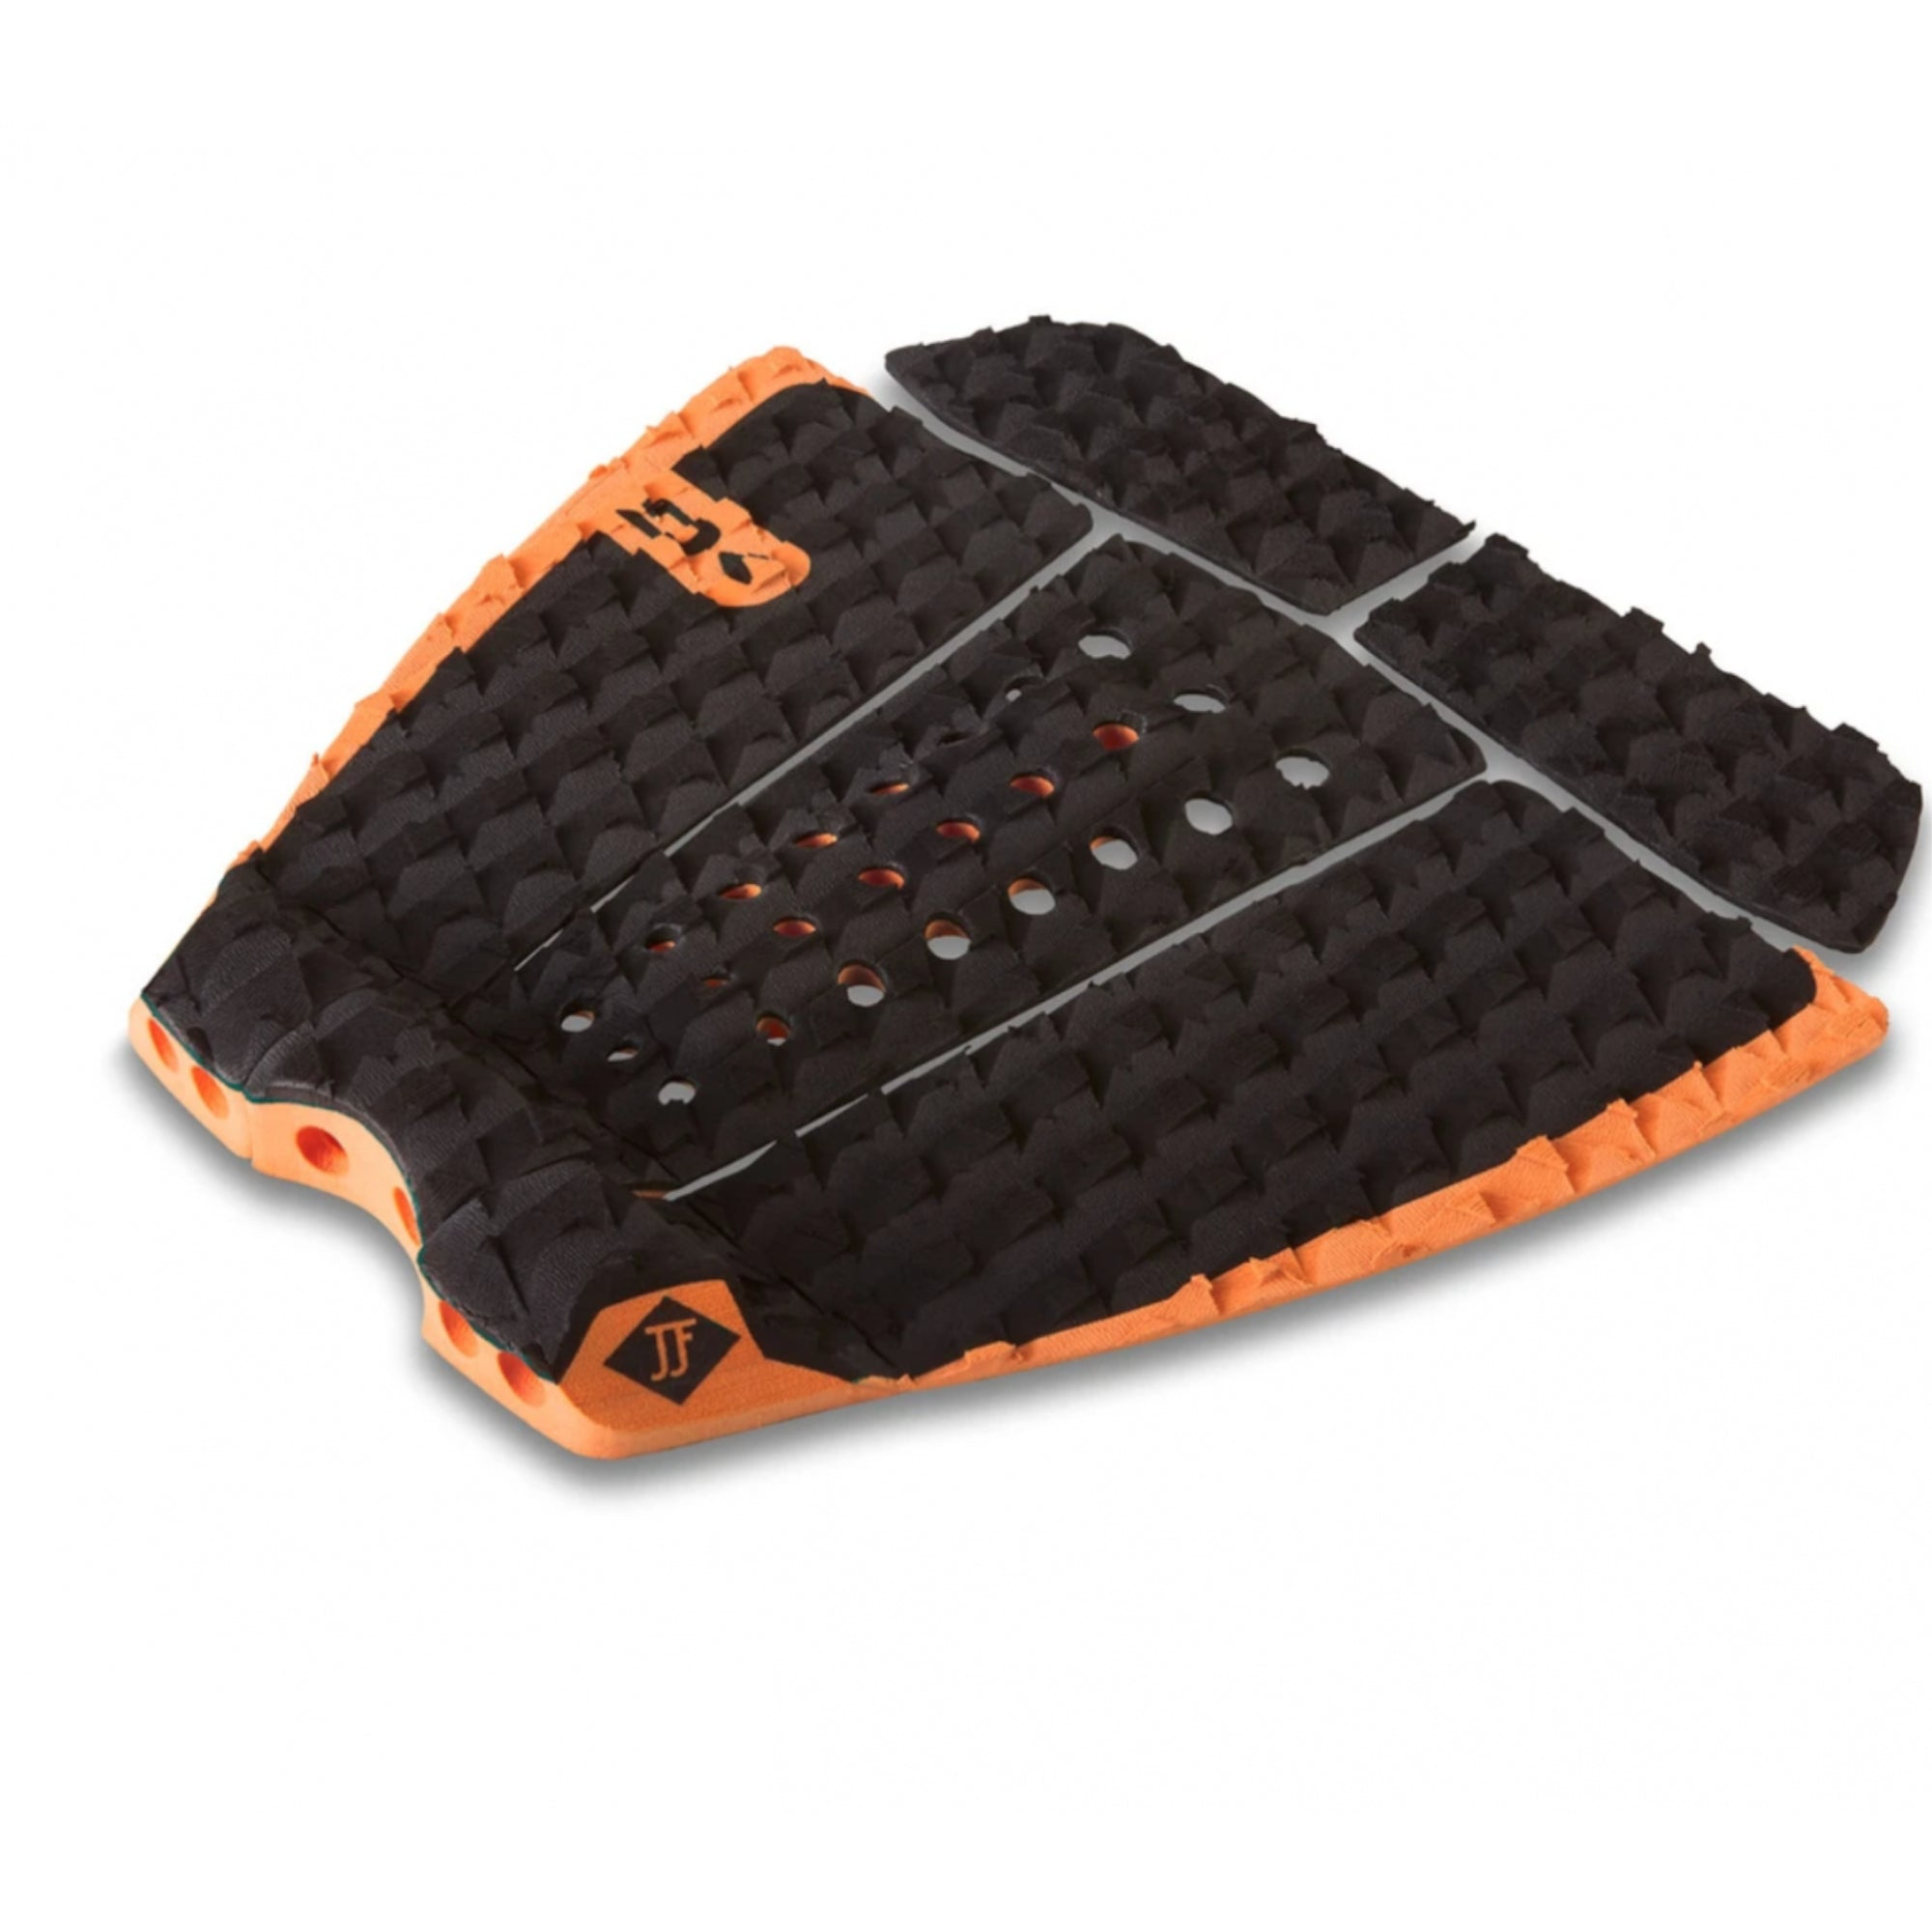 Dakine John John Florence Friendly Foam Arch Traction Pad - Black/Orange